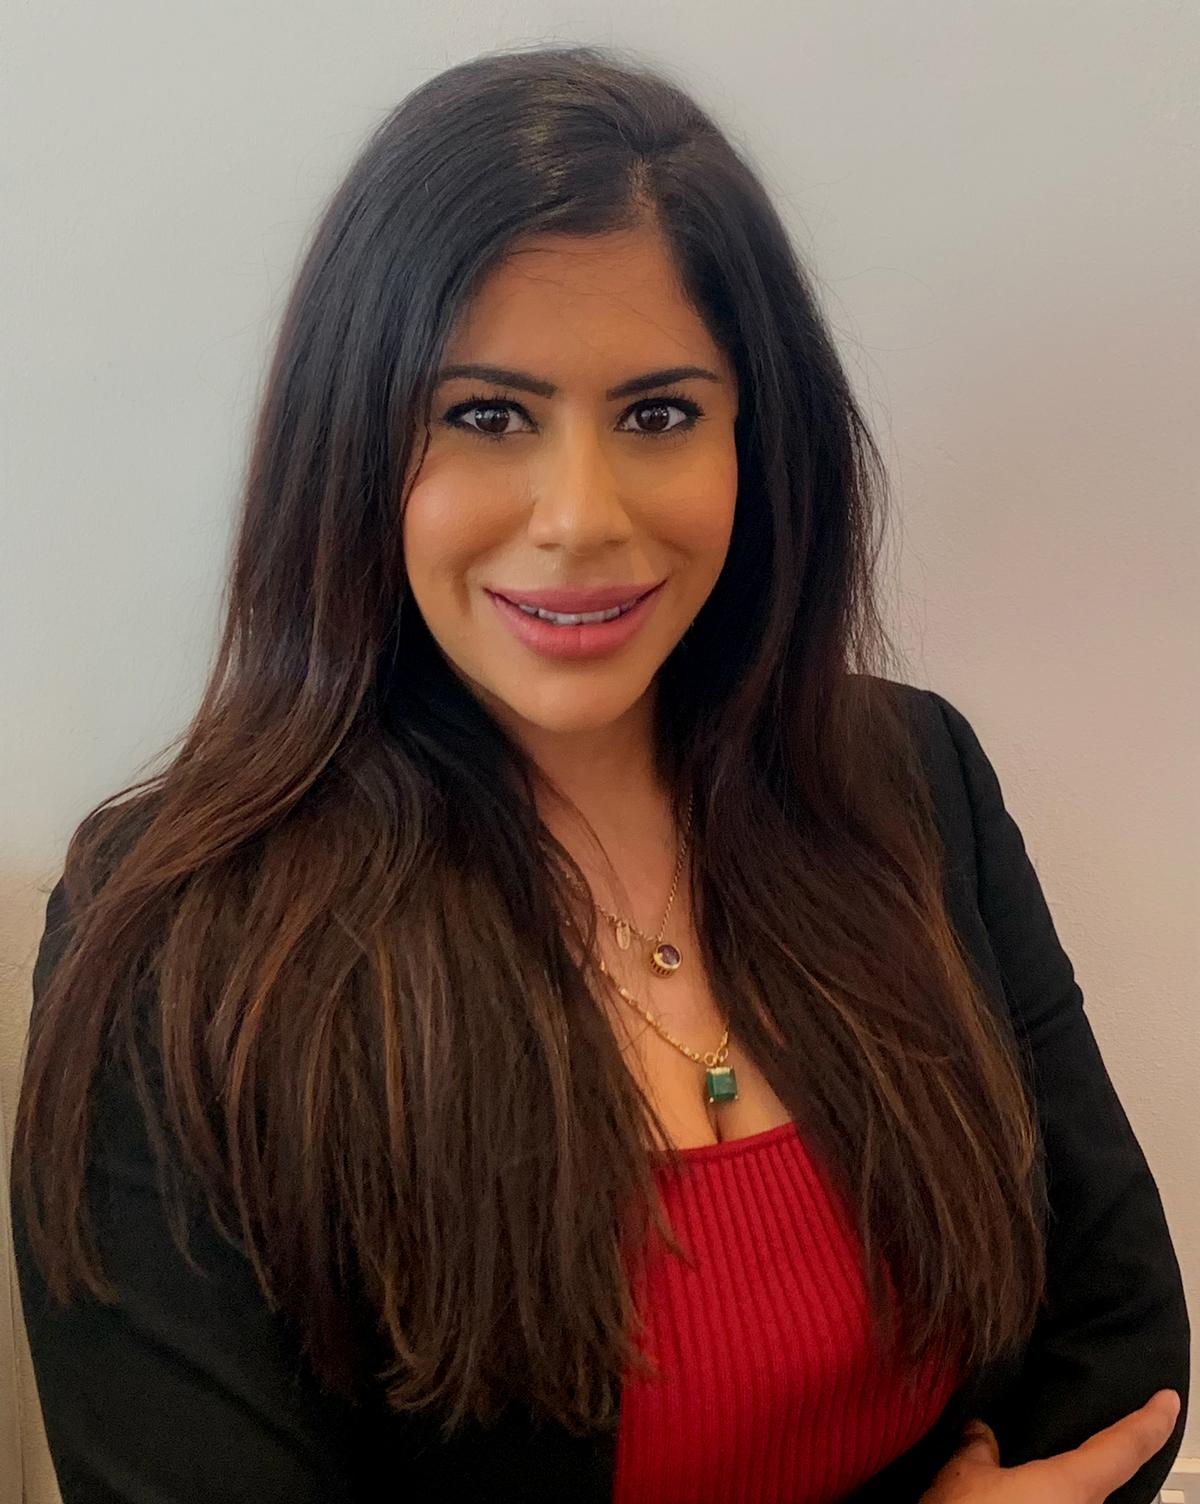 Serina Sandhu has worked in the cosmetics industry for over 16 years and held corporate roles at global brands including Natura Bissé and Charlotte Tilbury